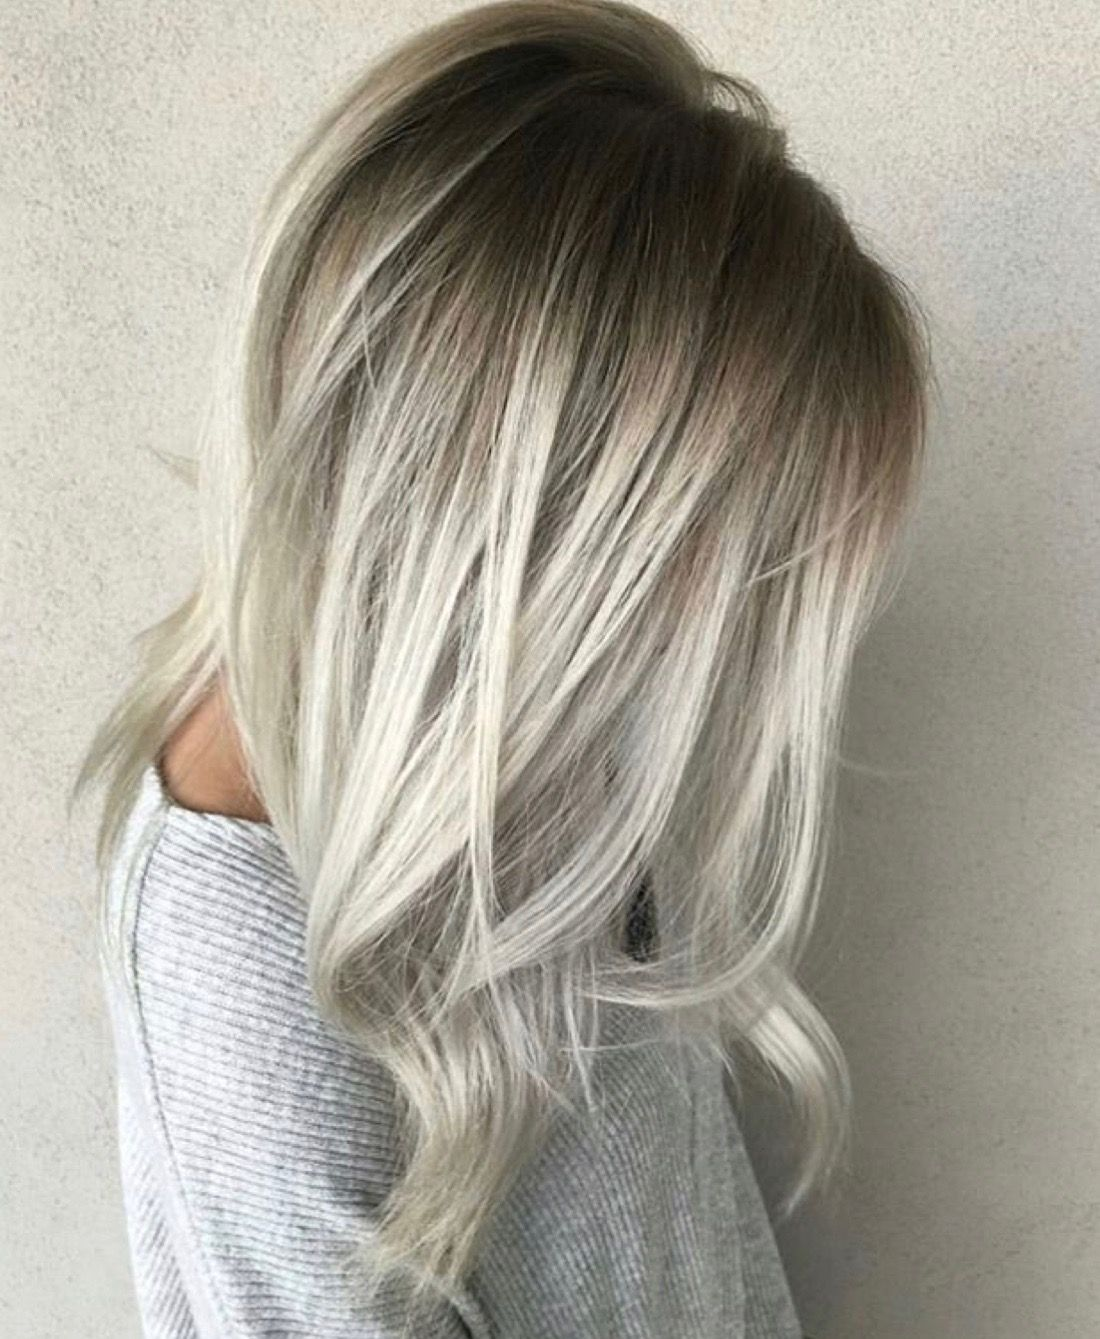 Neutral Rooted Blonde Balayage Fading Into Platinum Mids And Ends